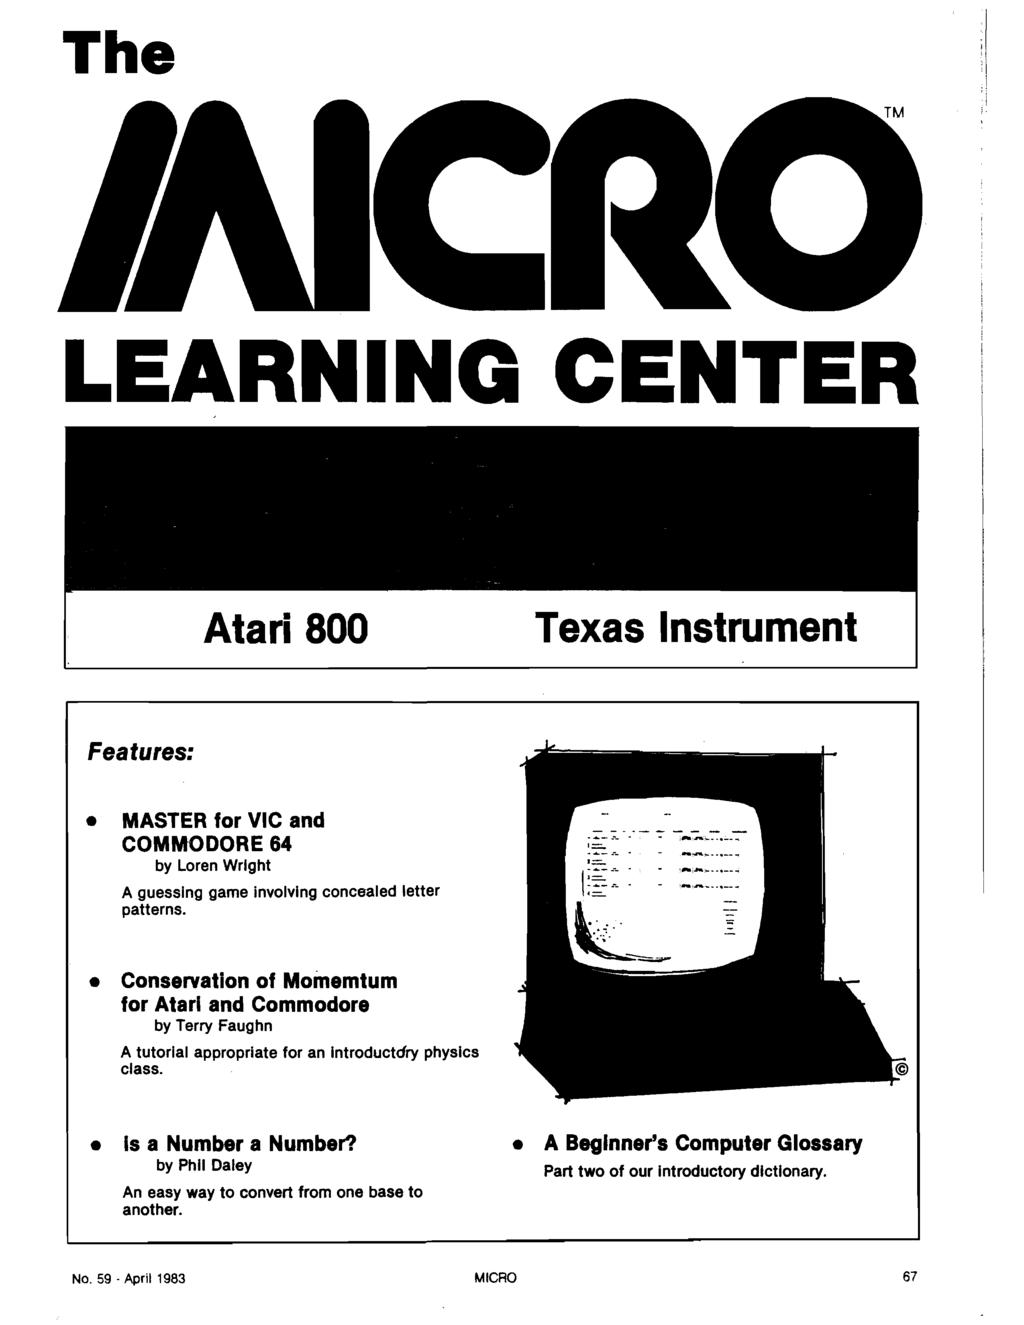 Advancing Computer Knowledge Pdf Commodore 64 Rev A Motherboard Schematics From 1982 The L E R N I G C T Atari 800 Texas Instrument F U S Master For Vic And By